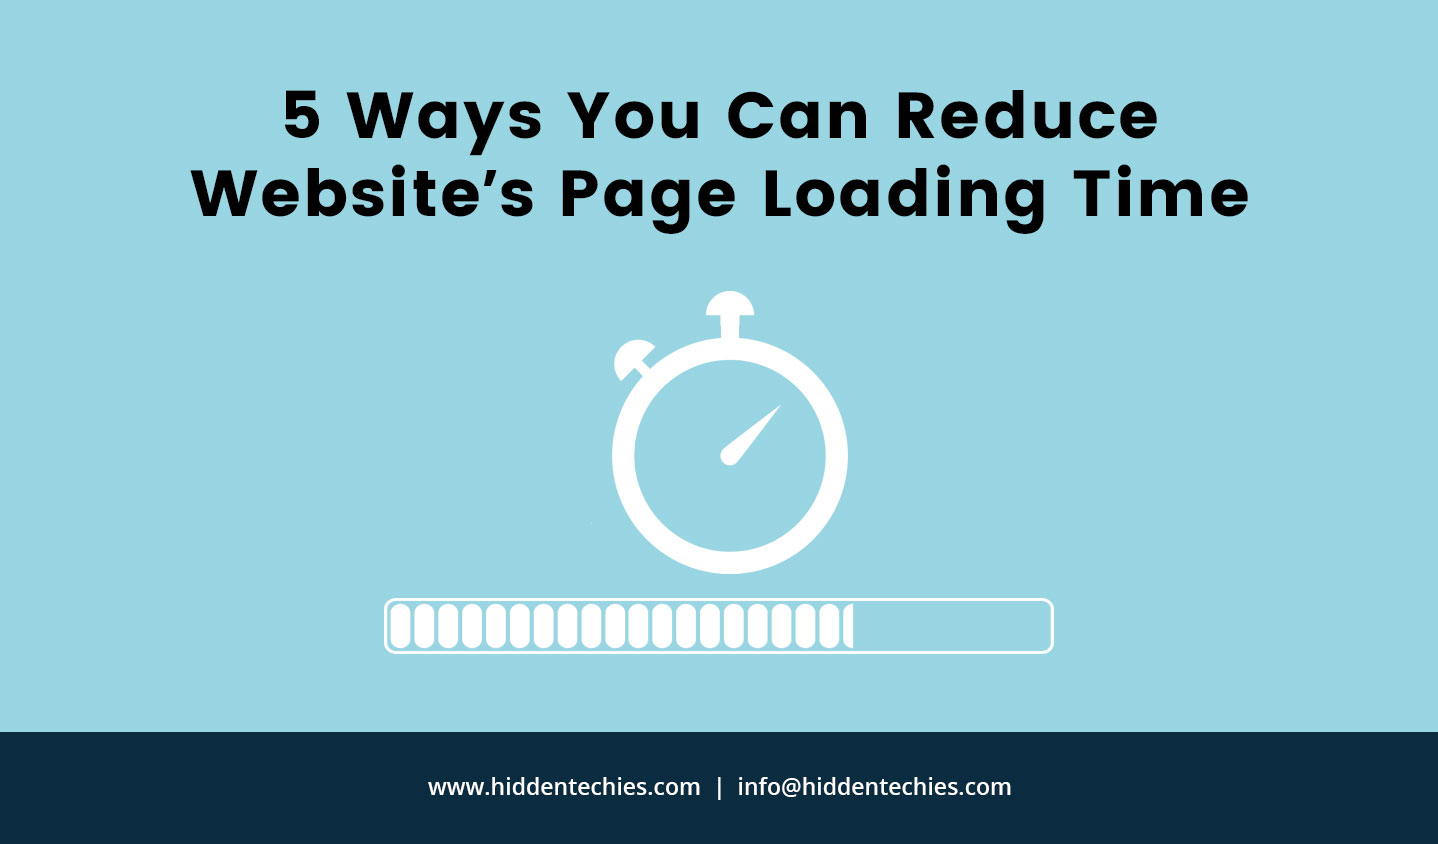 5 Ways You Can Reduce Website's Page Loading Time